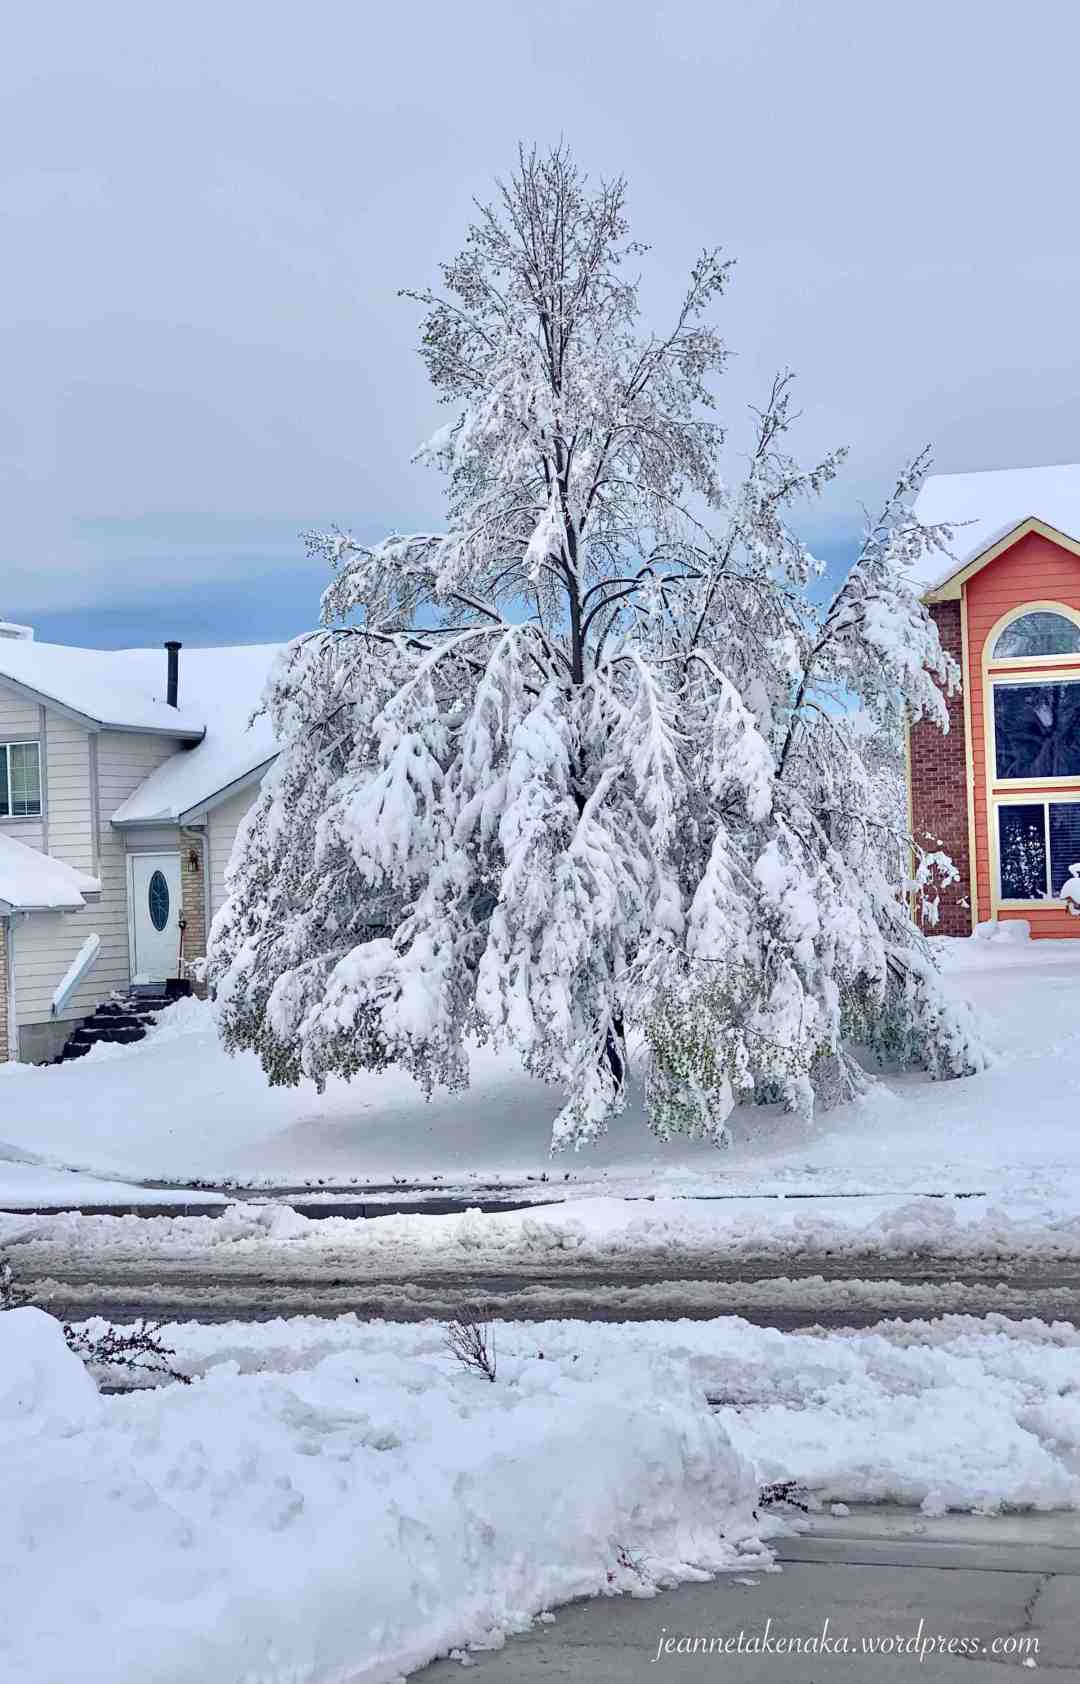 A large trees with branches drooping low due to heavy snow